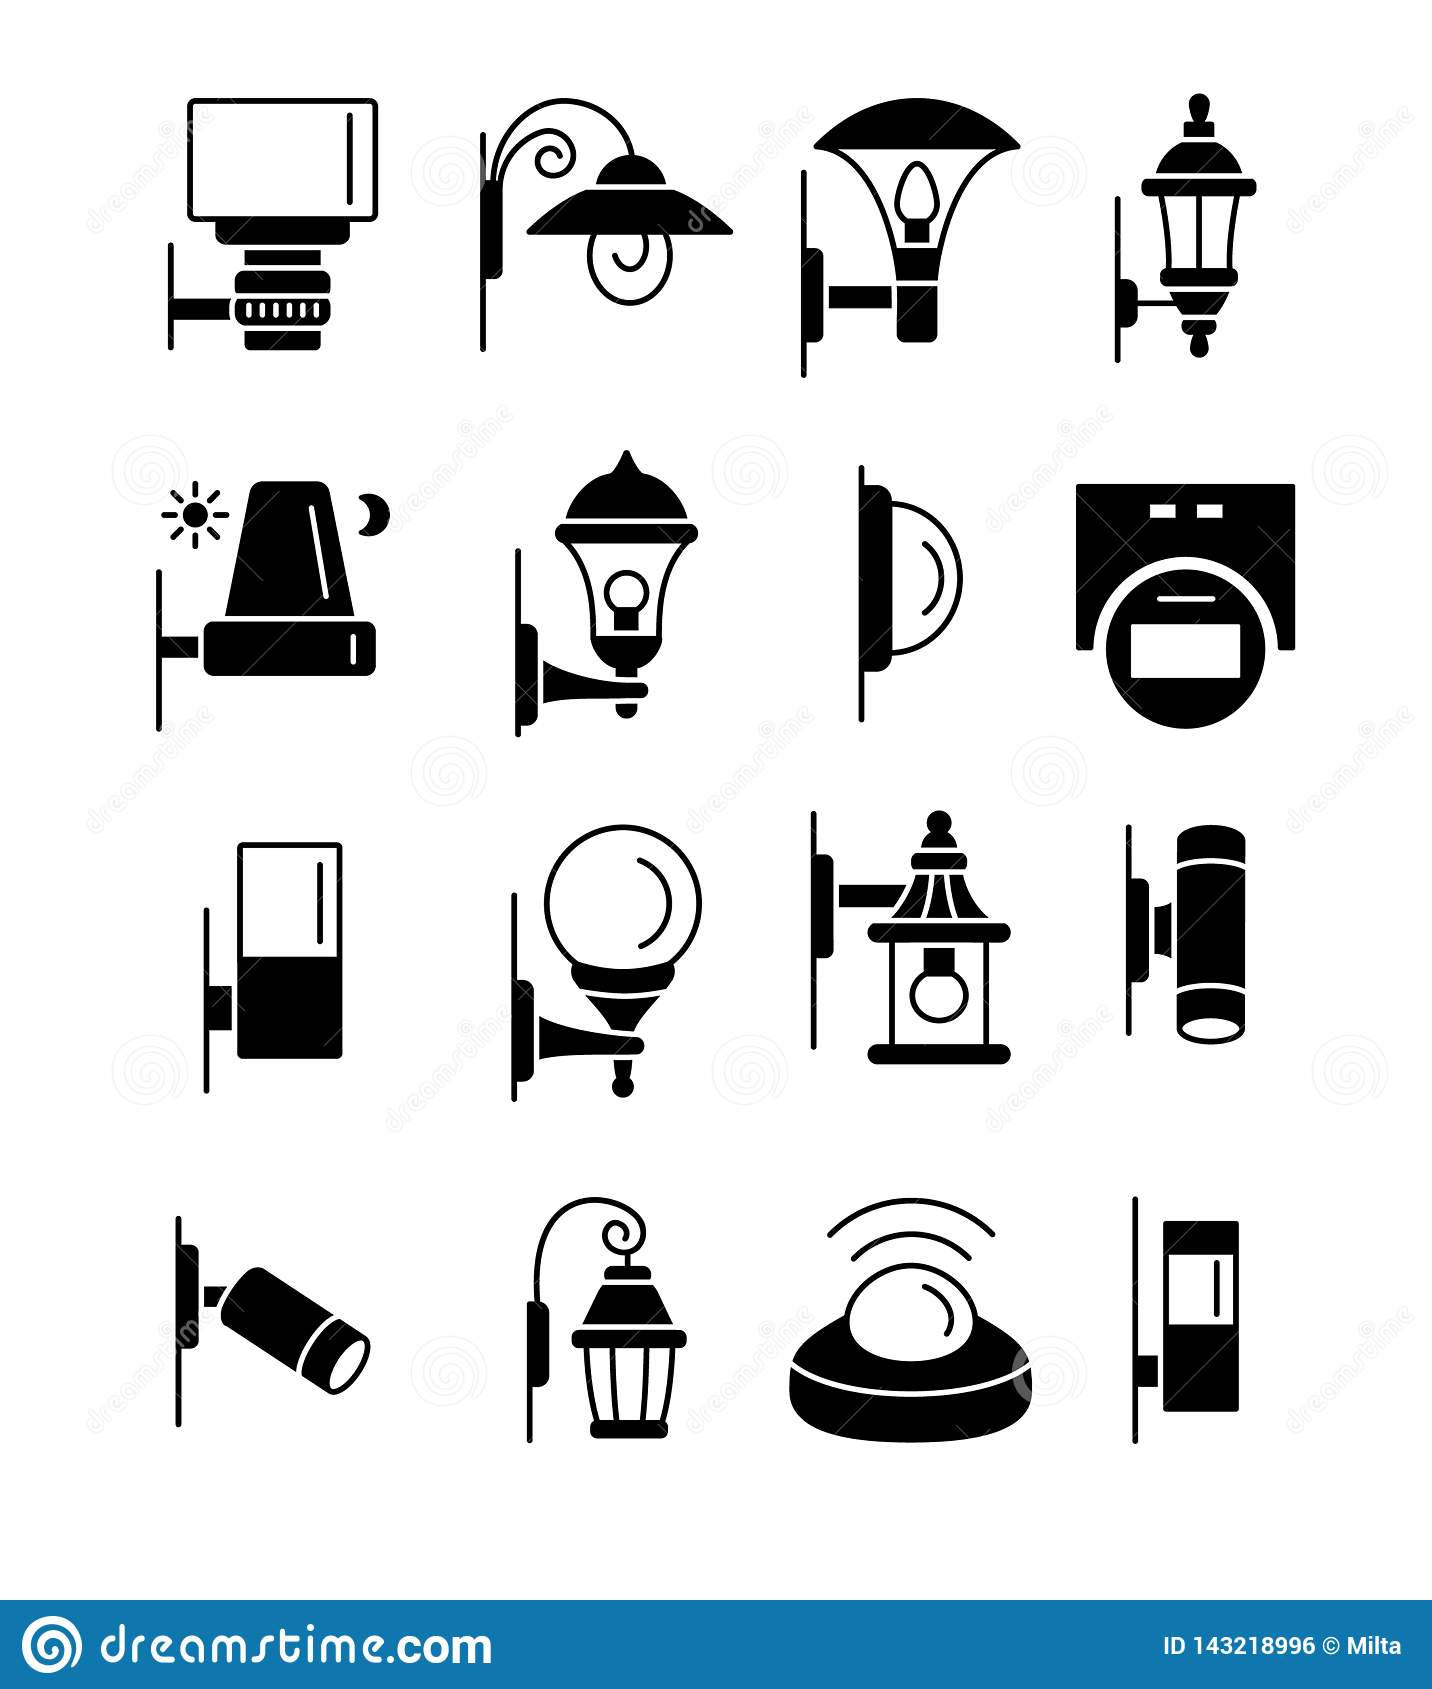 porch patio lights security devices outdoor wall lighting vector flat icon set isolated objects stock vector illustration of illumination lighting 143218996 https www dreamstime com porch patio lights security devices outdoor wall lighting vector flat icon set isolated objects white background image143218996